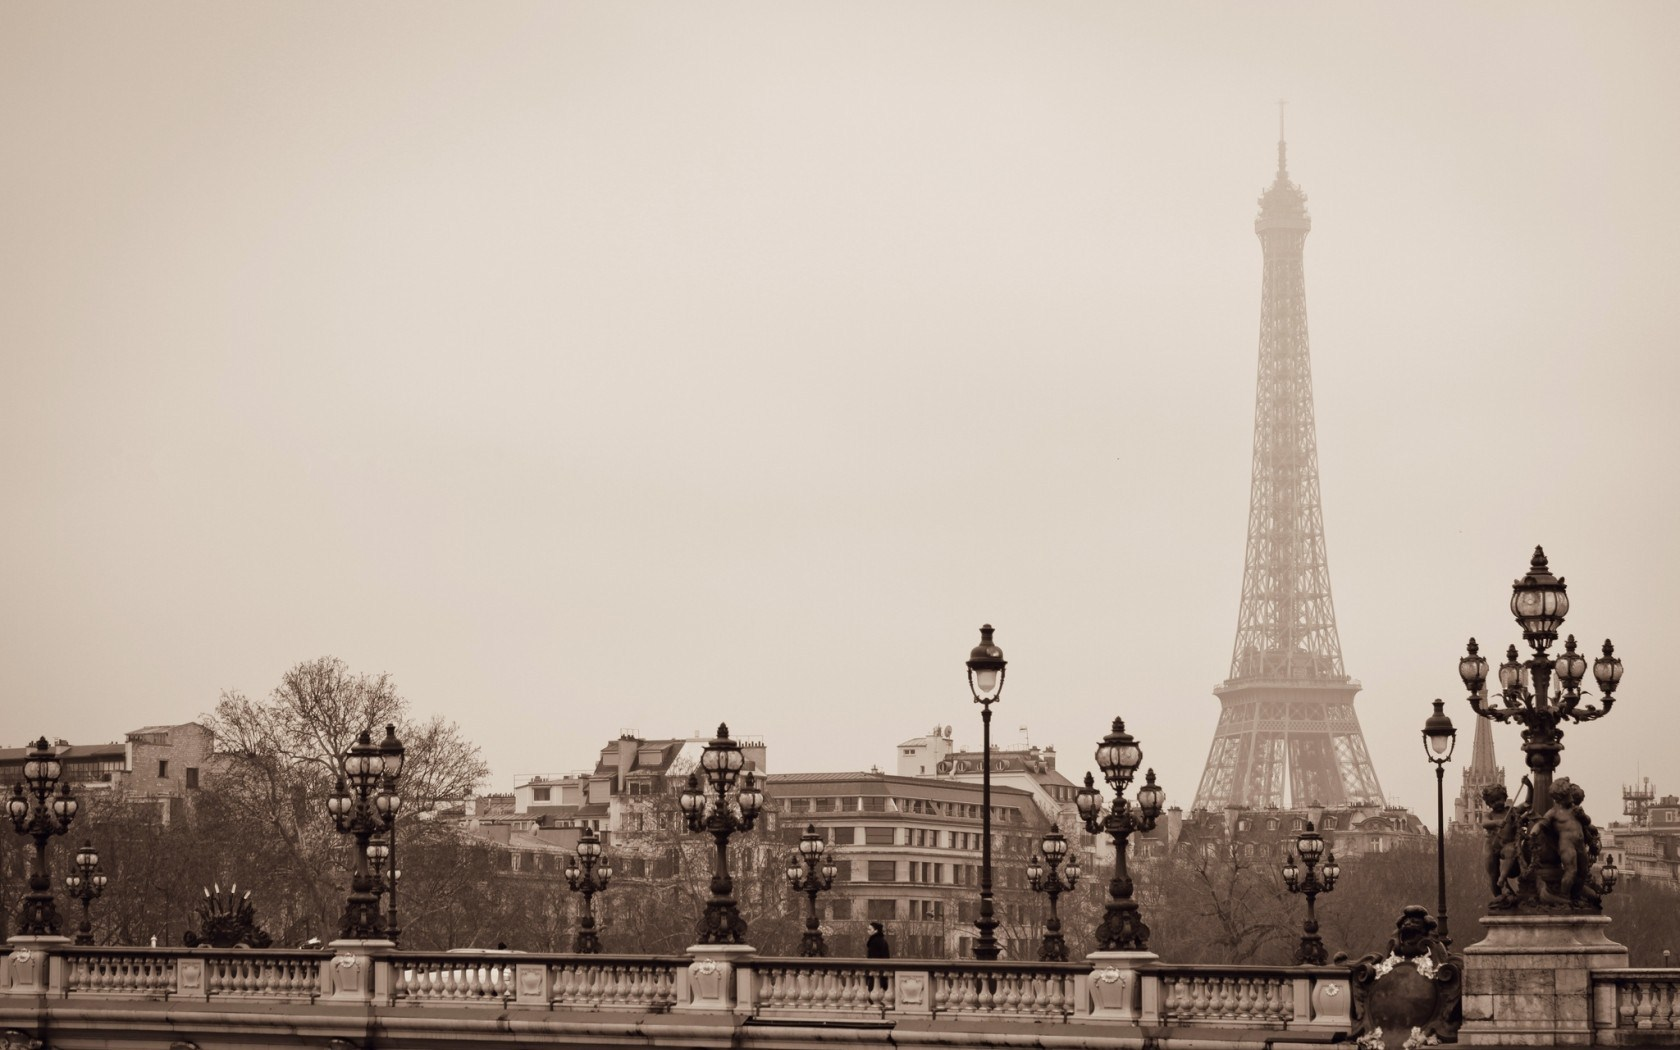 Eiffel Tower Paris France Greyscale Hd Wallpaper 1680x1050PX .